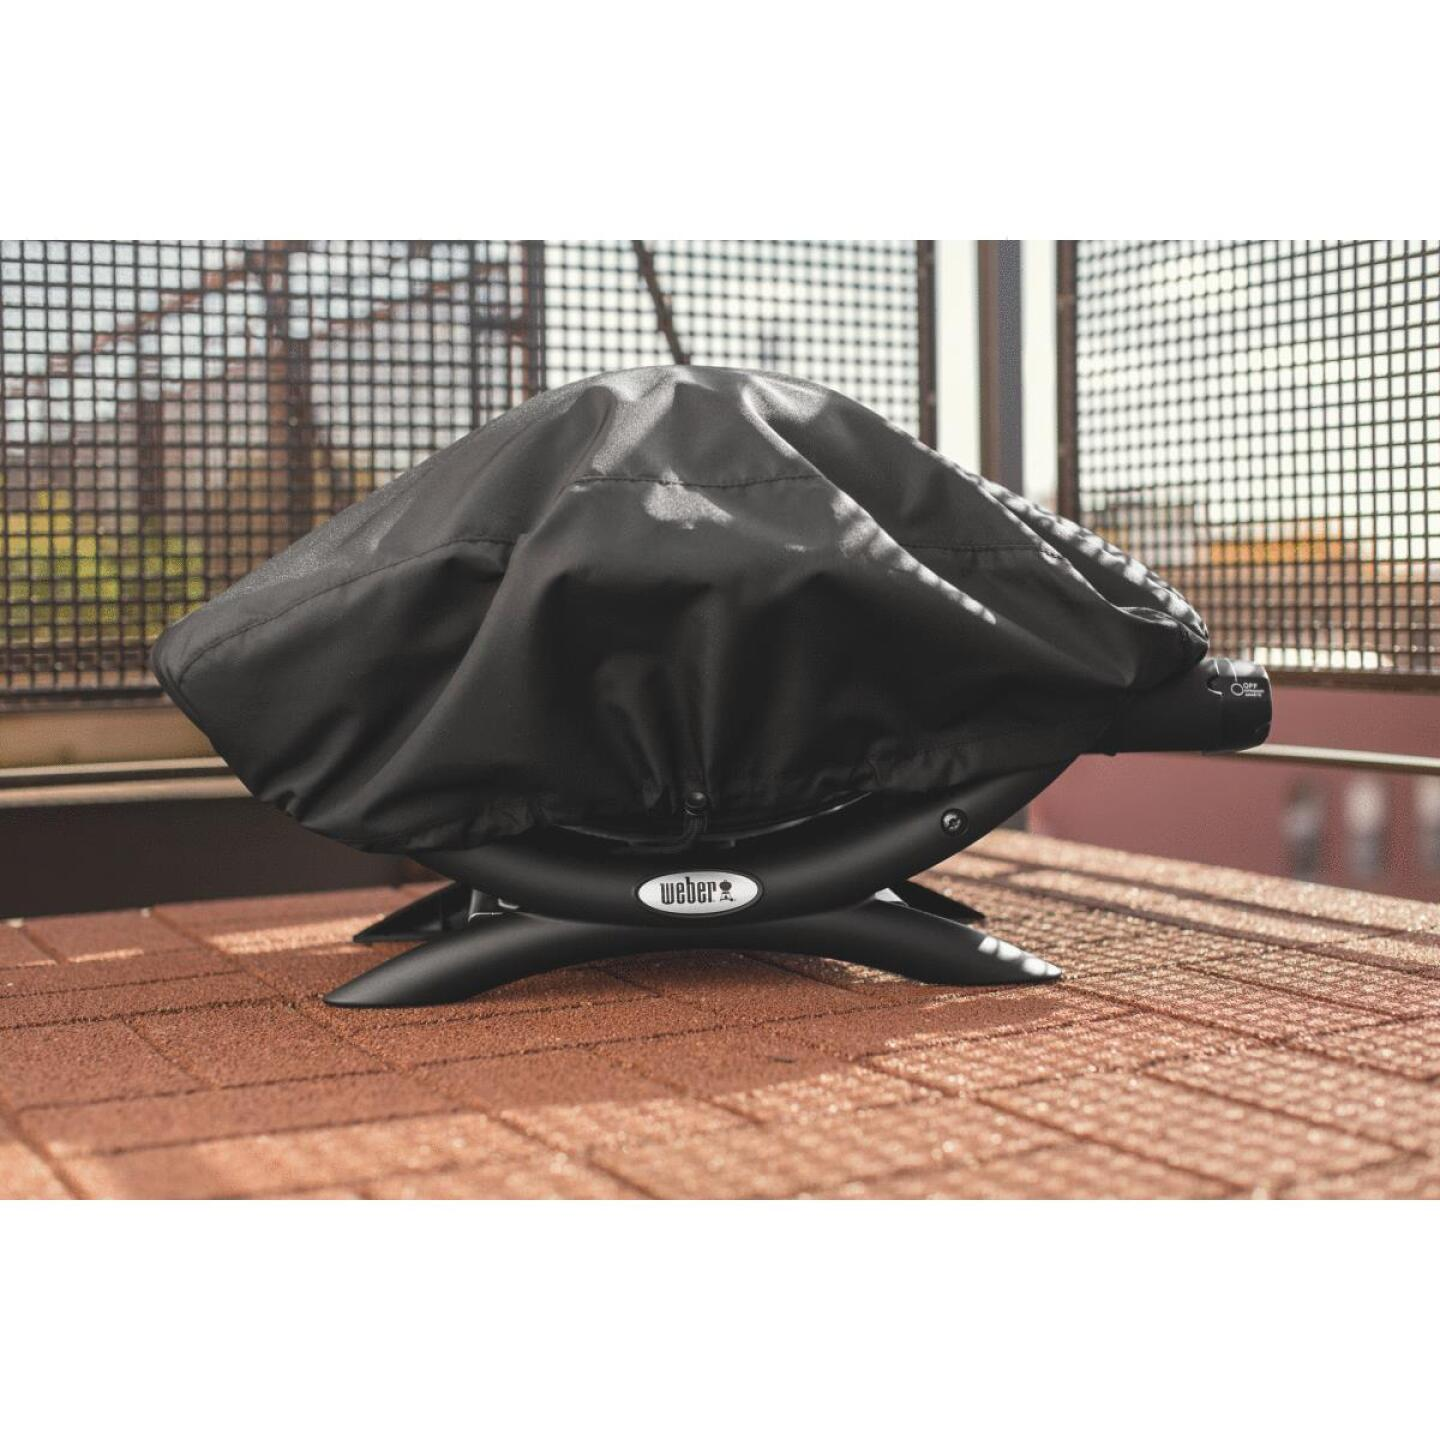 Weber Q 100/1000 27 In. Black Vinyl Grill Cover Image 3